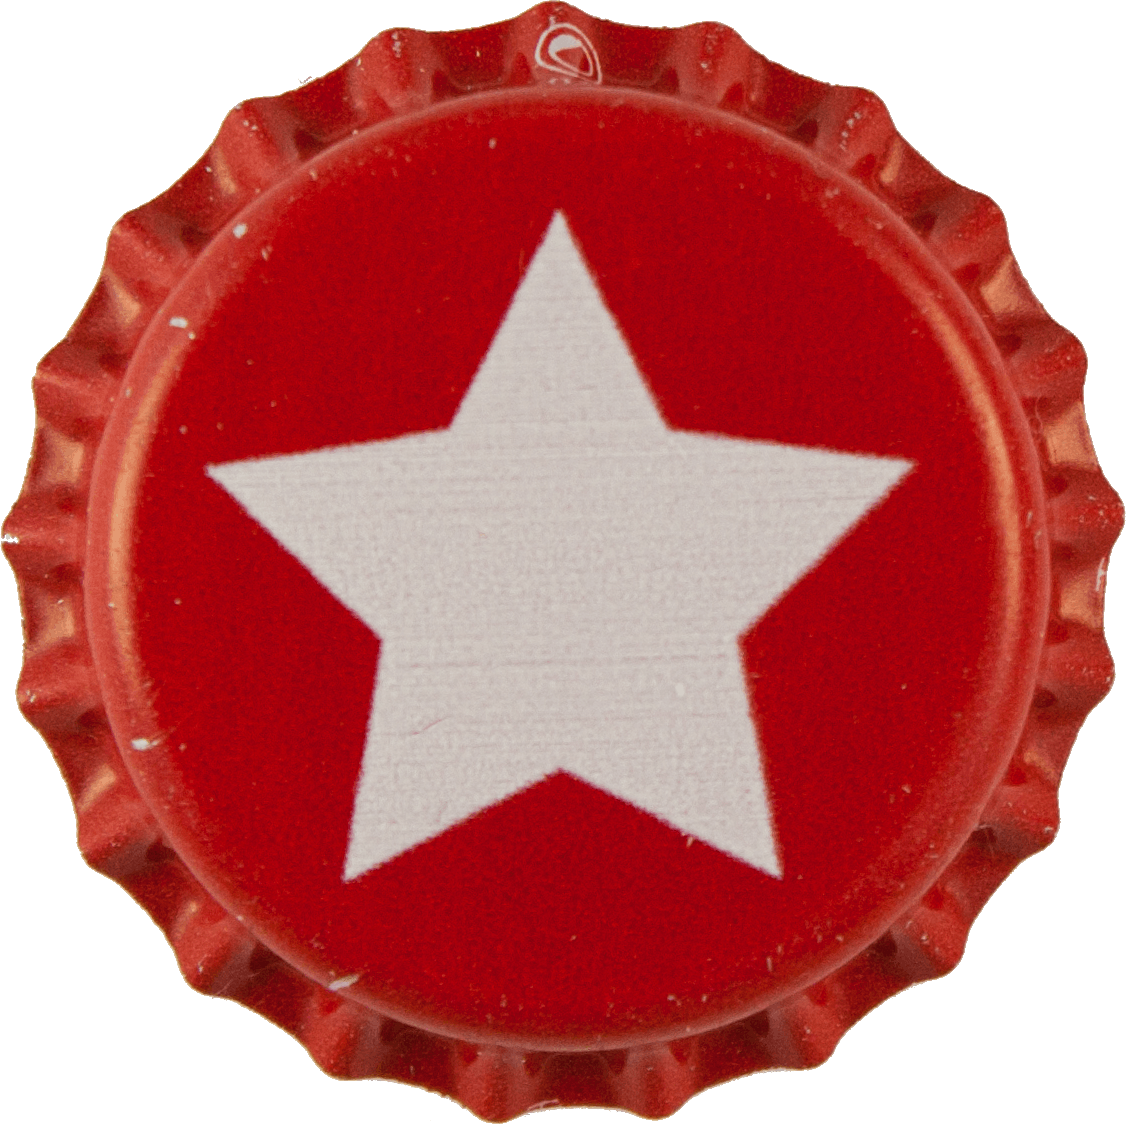 Custom-Printed Bottle Caps Bottle cap sold by BottleMark